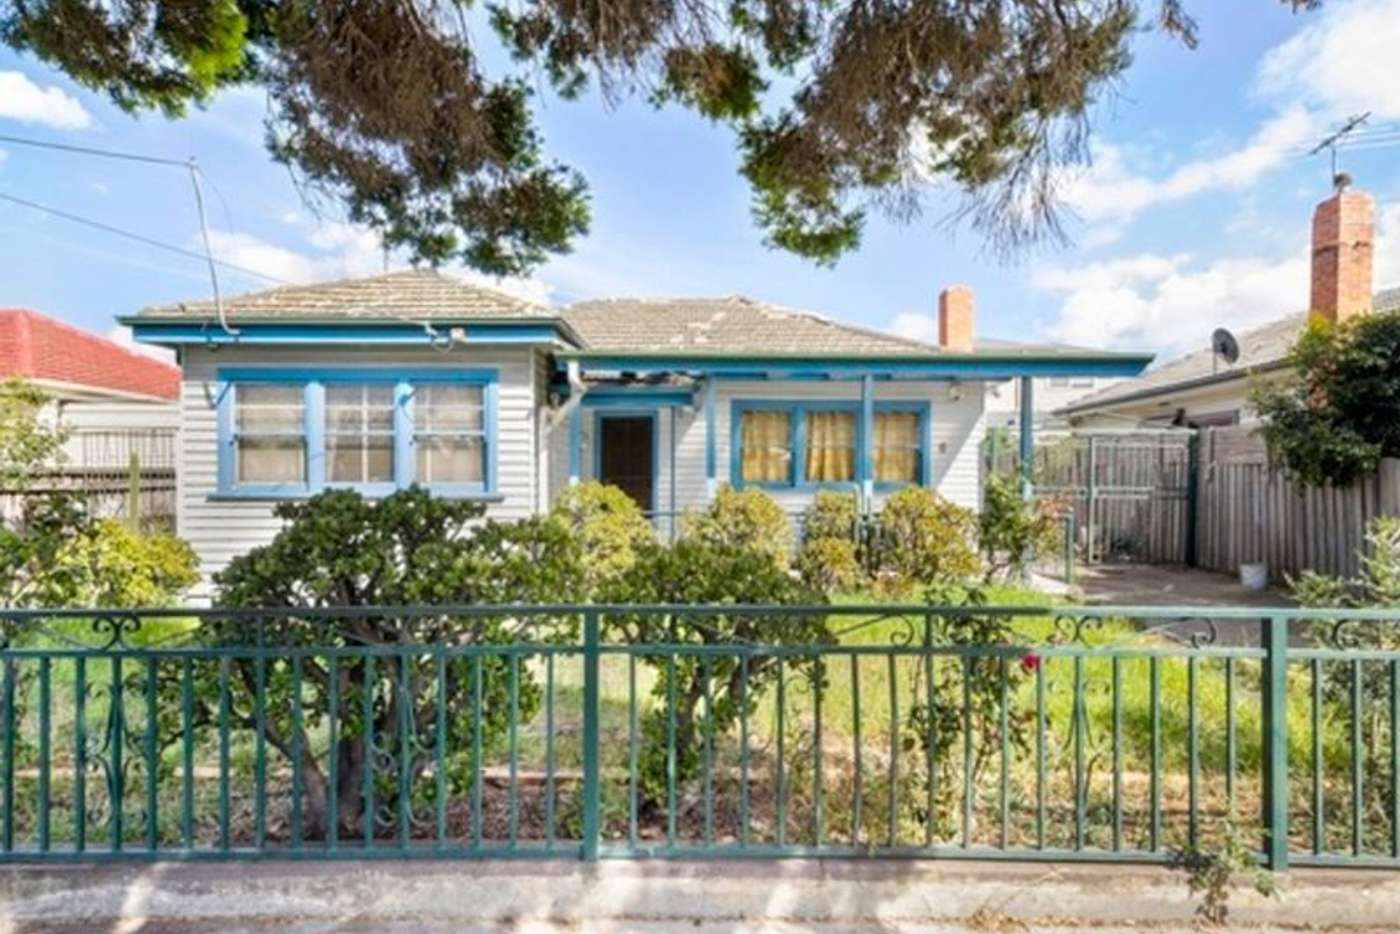 Main view of Homely house listing, 6 Sredna Street, West Footscray VIC 3012